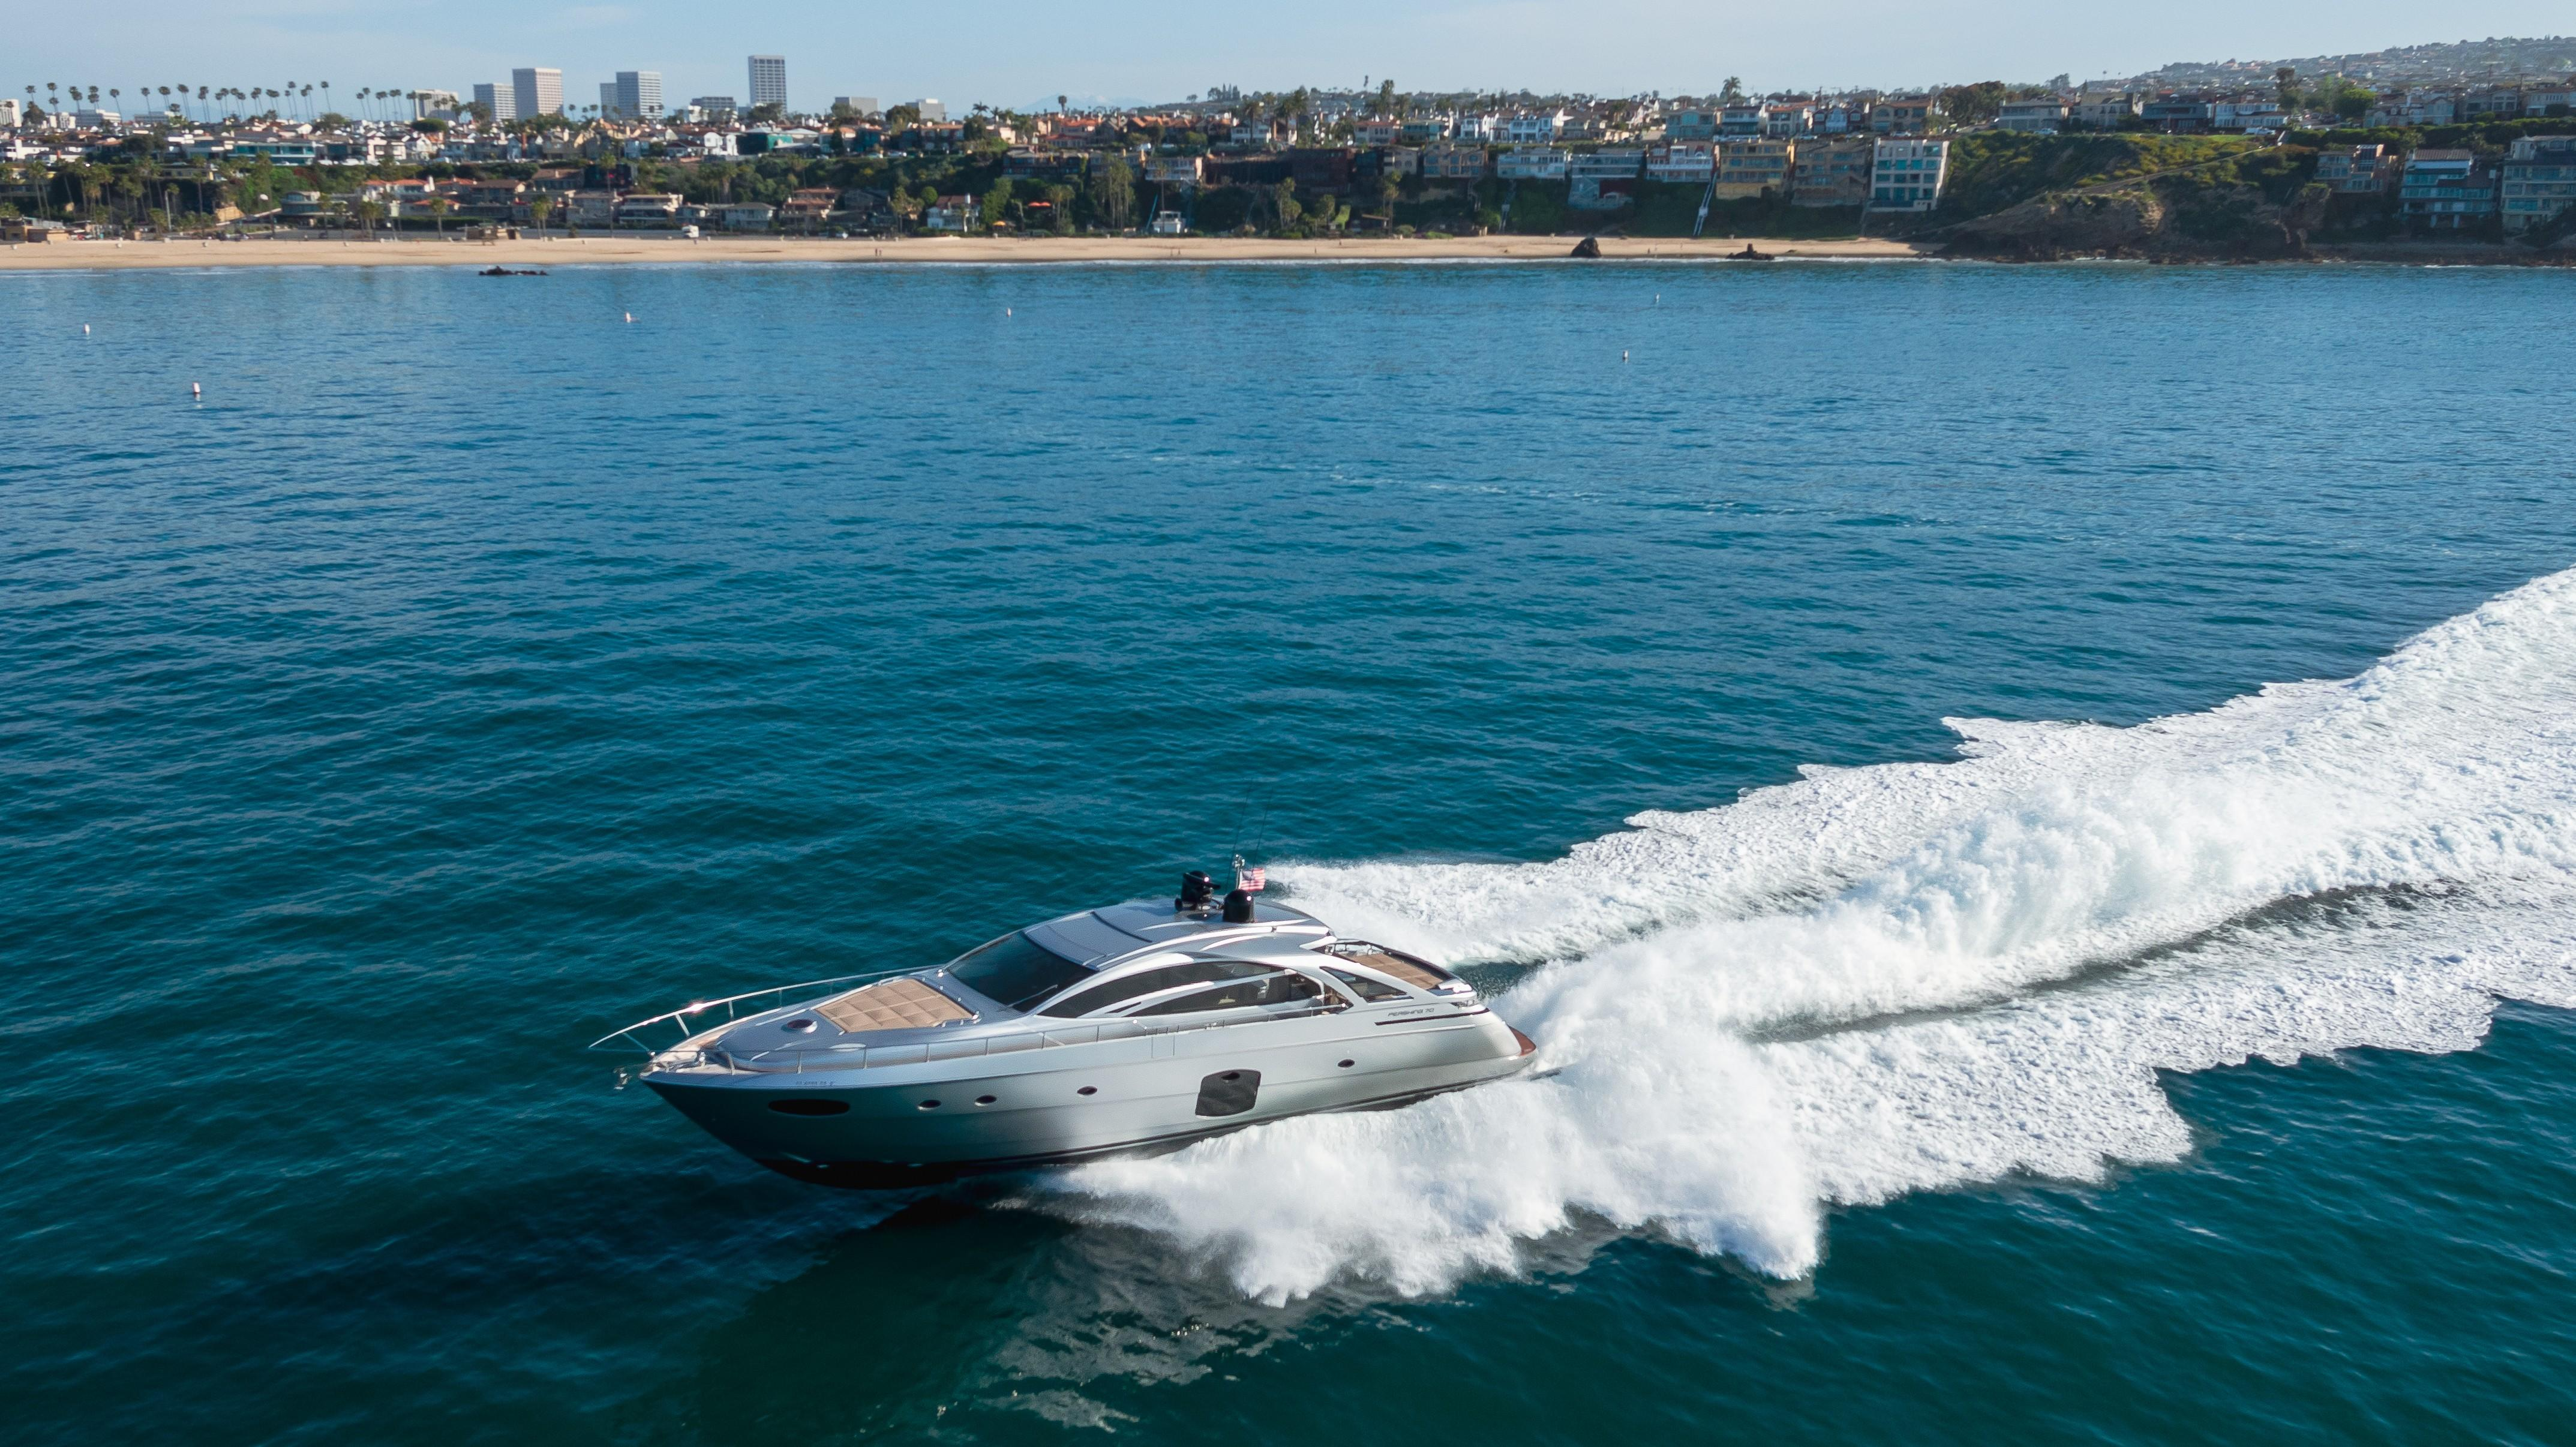 2018 Pershing 70 #TB15JR inventory image at Sun Country Yachts in Newport Beach